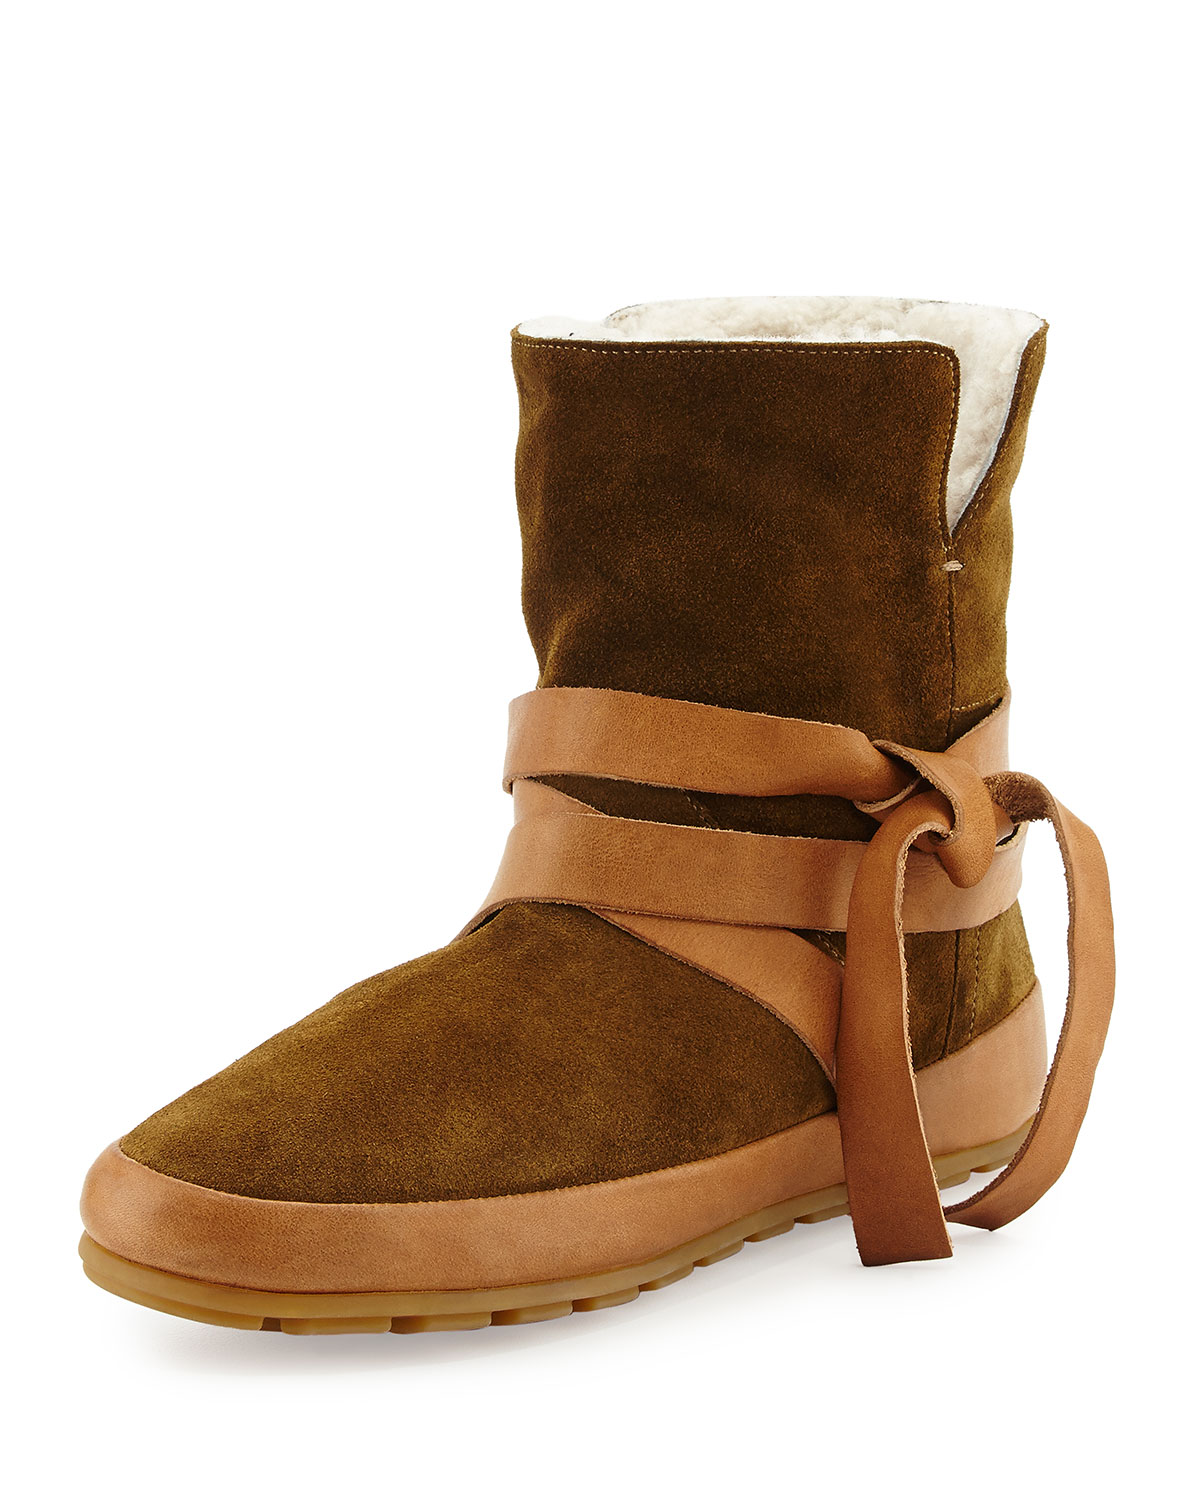 Isabel Marant Nygel Shearling Fur-Lined Wrap-Around Bootie, Brown